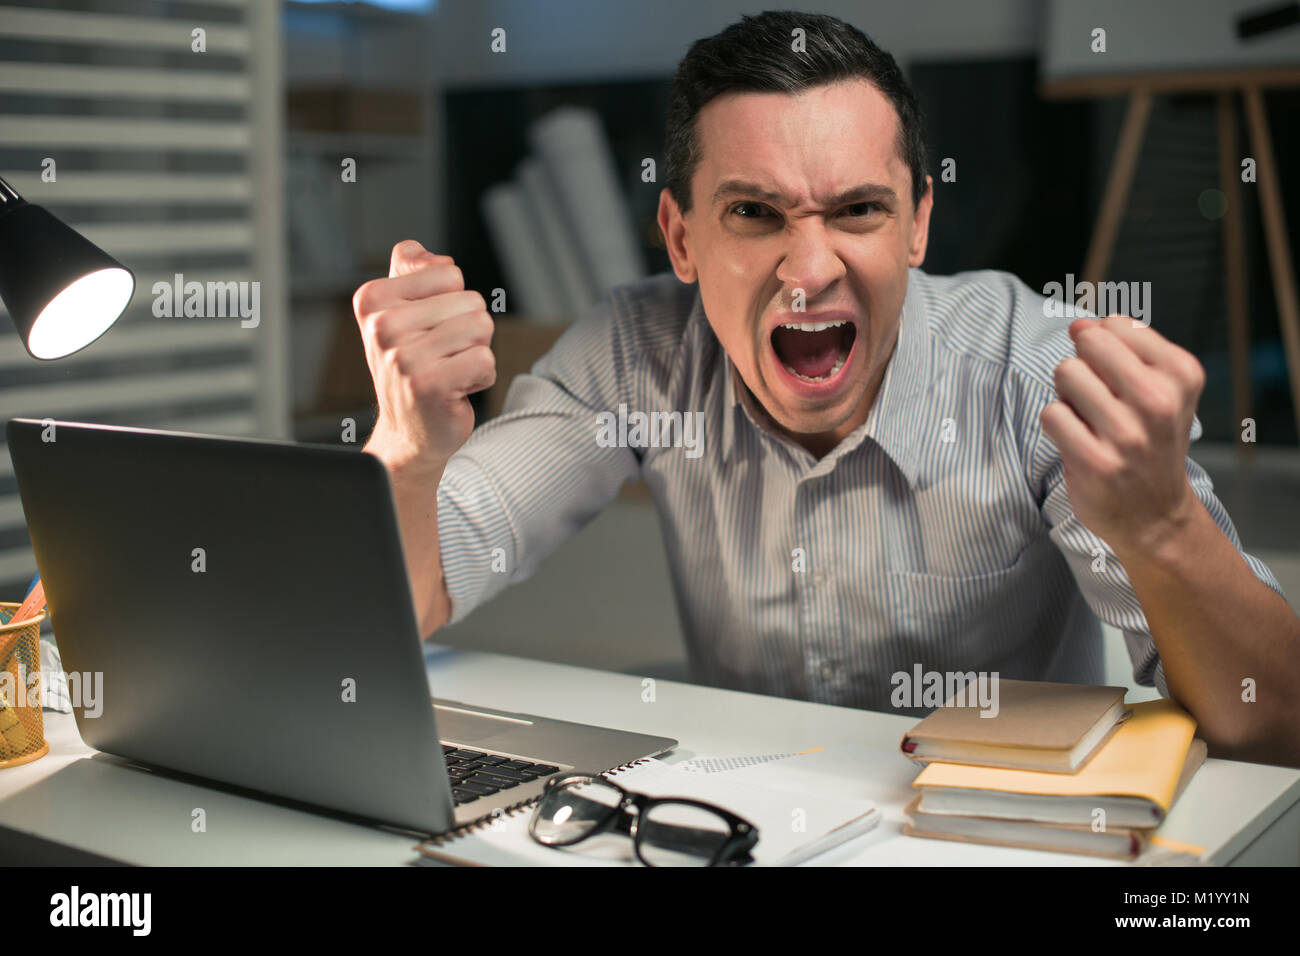 Mad male employee overloading with work - Stock Image